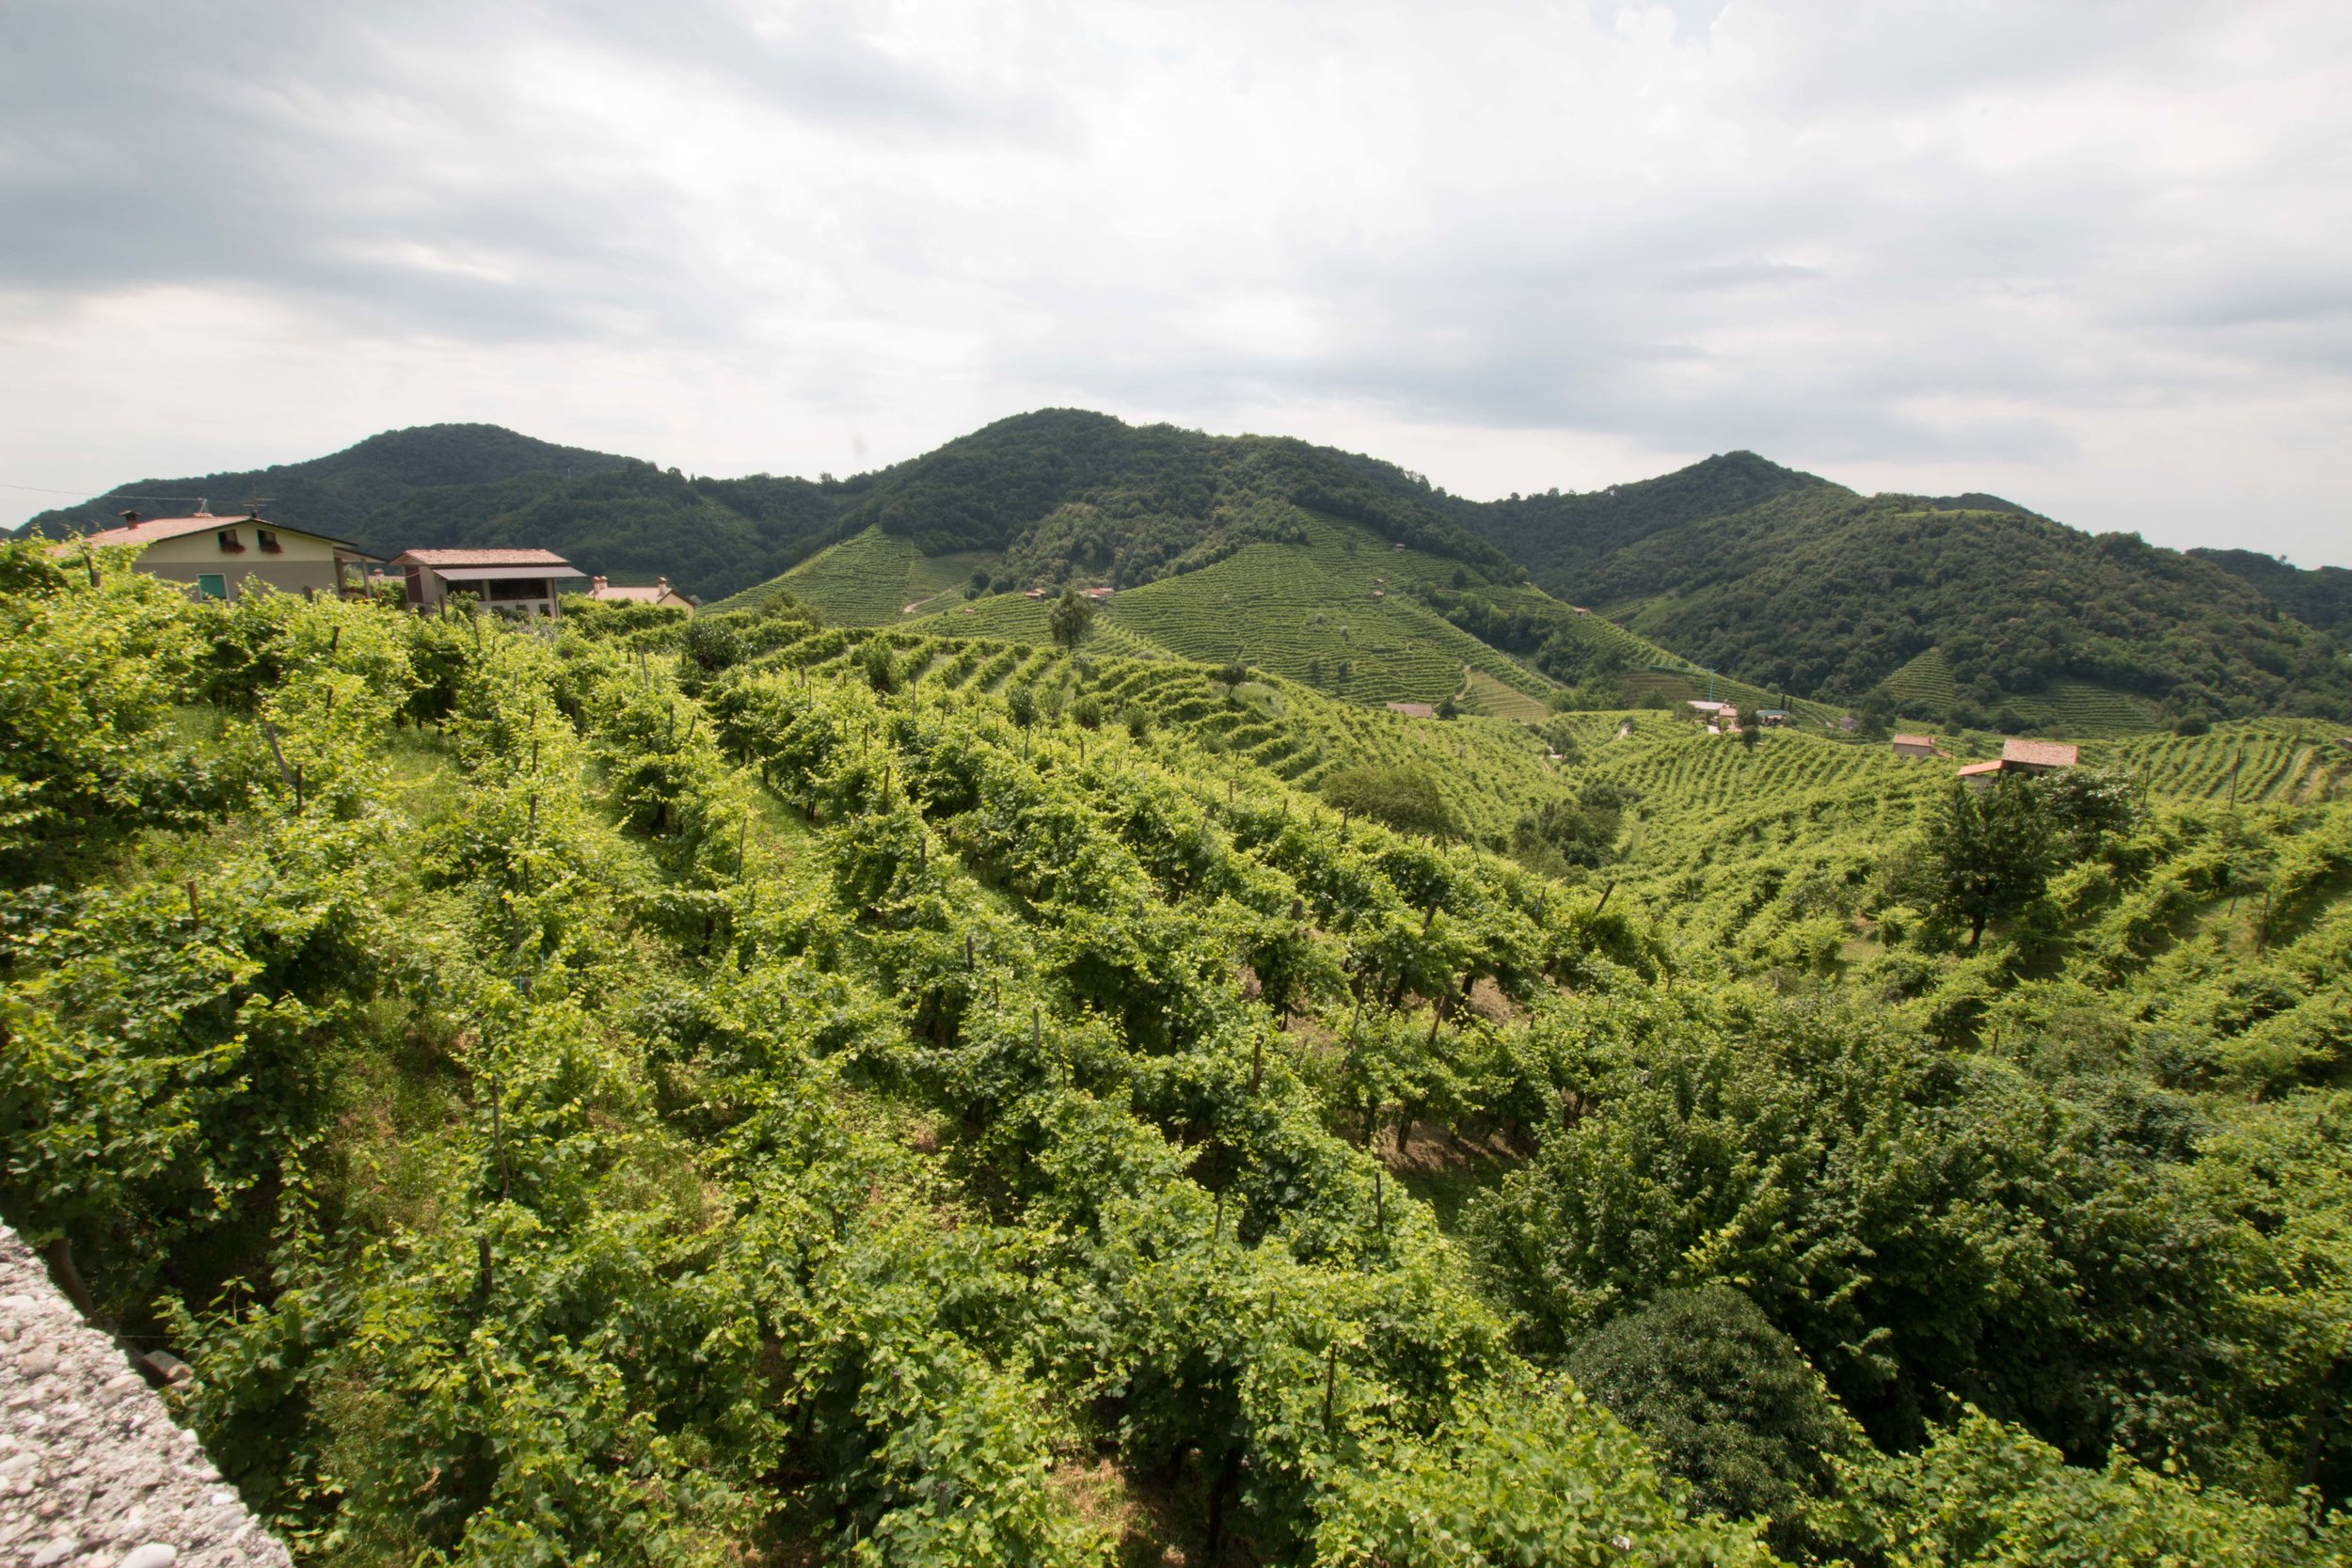 The vineyards terraced tightly onto othe gently rolling hills along the Prosecco Road